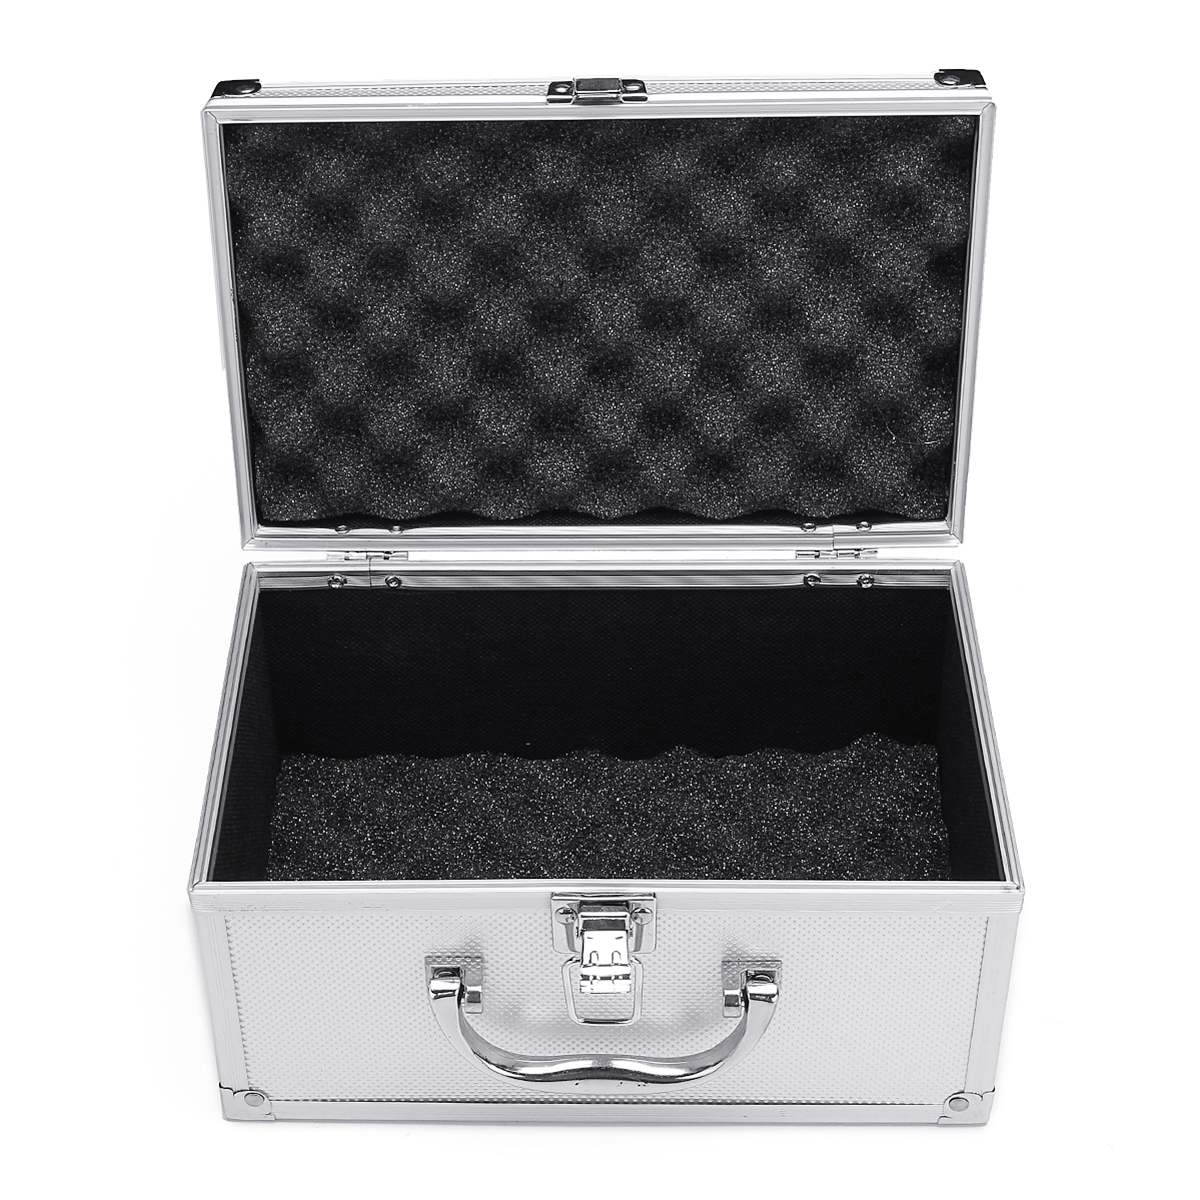 Aluminium Tattoo/Gun Carrying Case Rotary Coil Tattoo Machine Storage Box Permanent Makeup Embroidery Equipment 230 * 150 * 125m